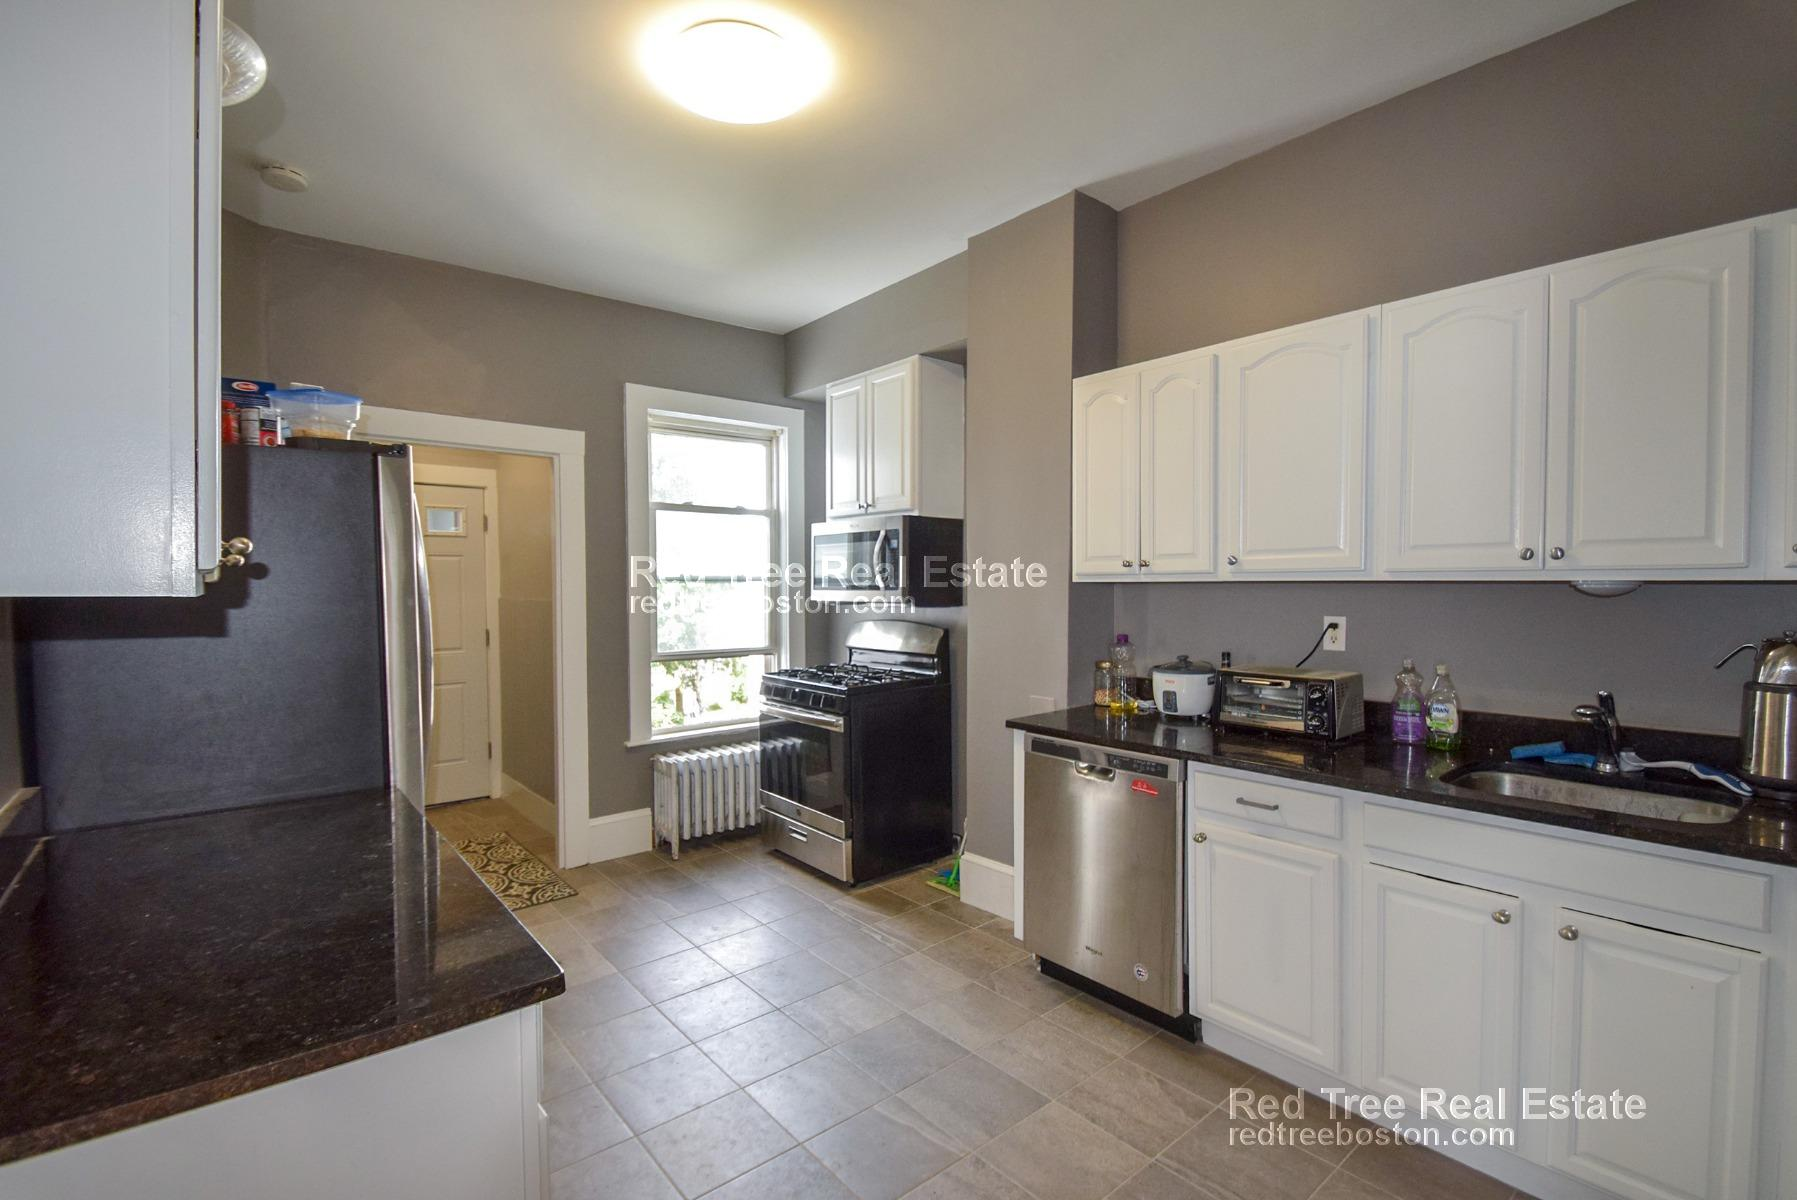 5BR on Surrey St with Laundry & Dishwasher in unit near Bus stop - Fee